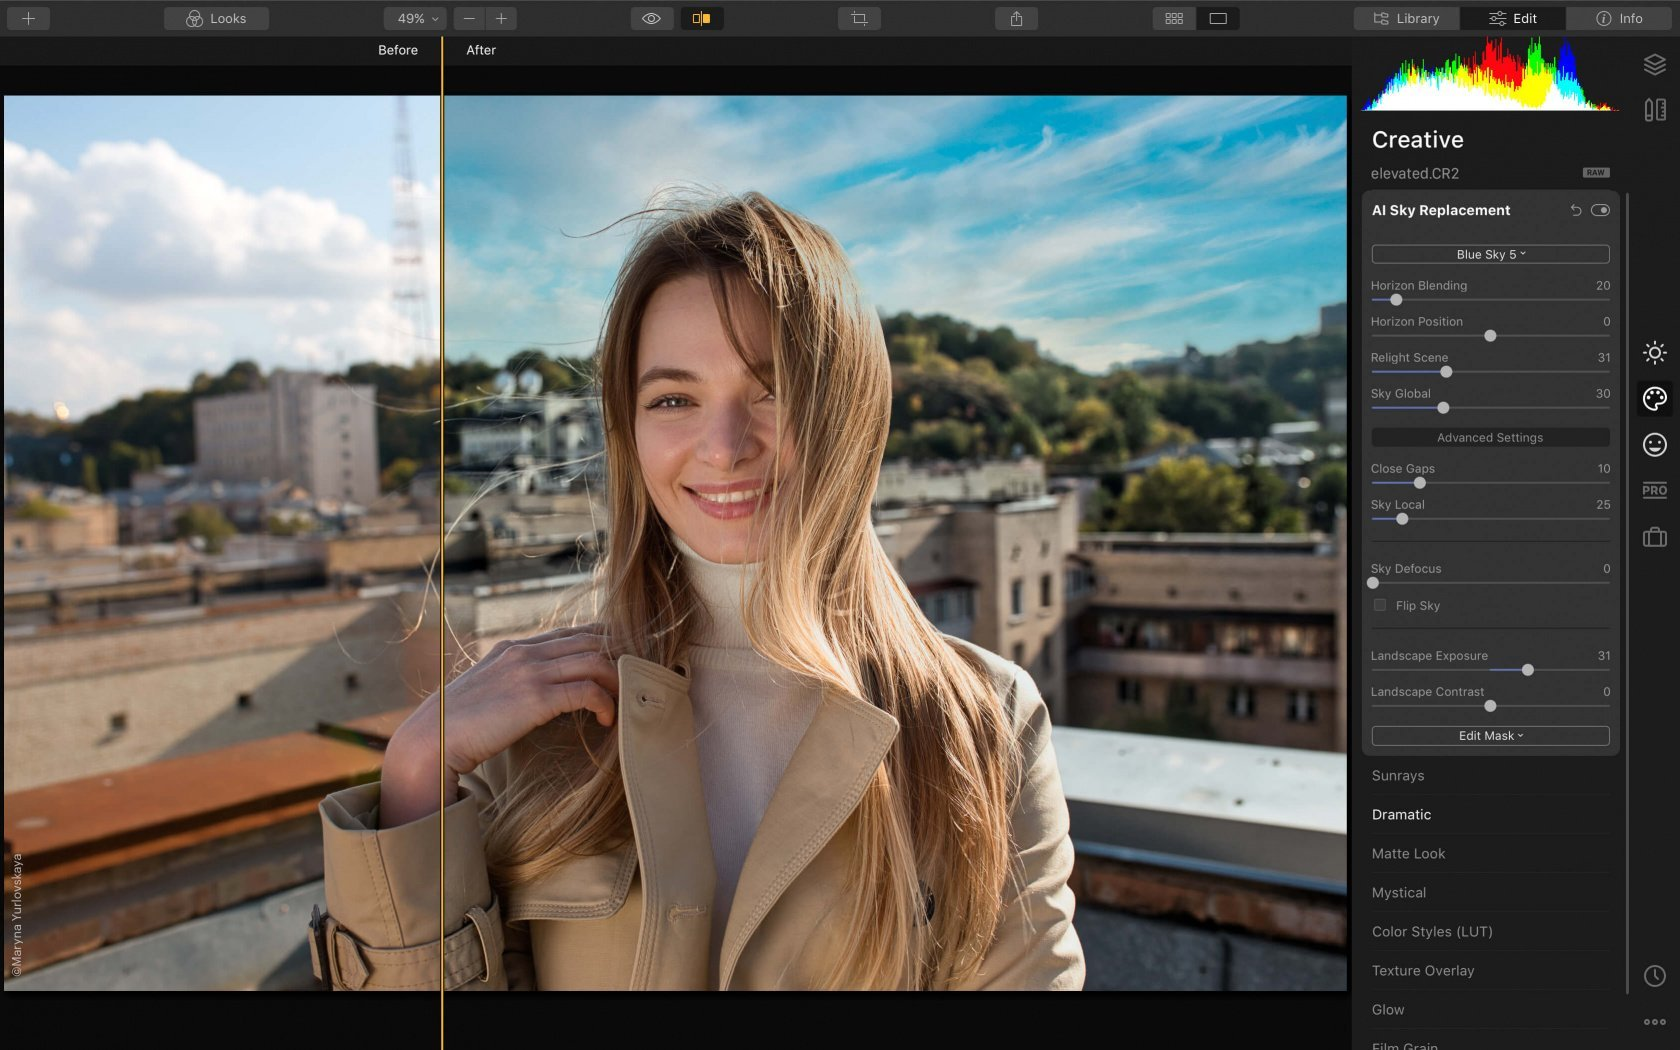 The Best Photo Editing Software for Beginners in 2020 (Free/Paid) Image1